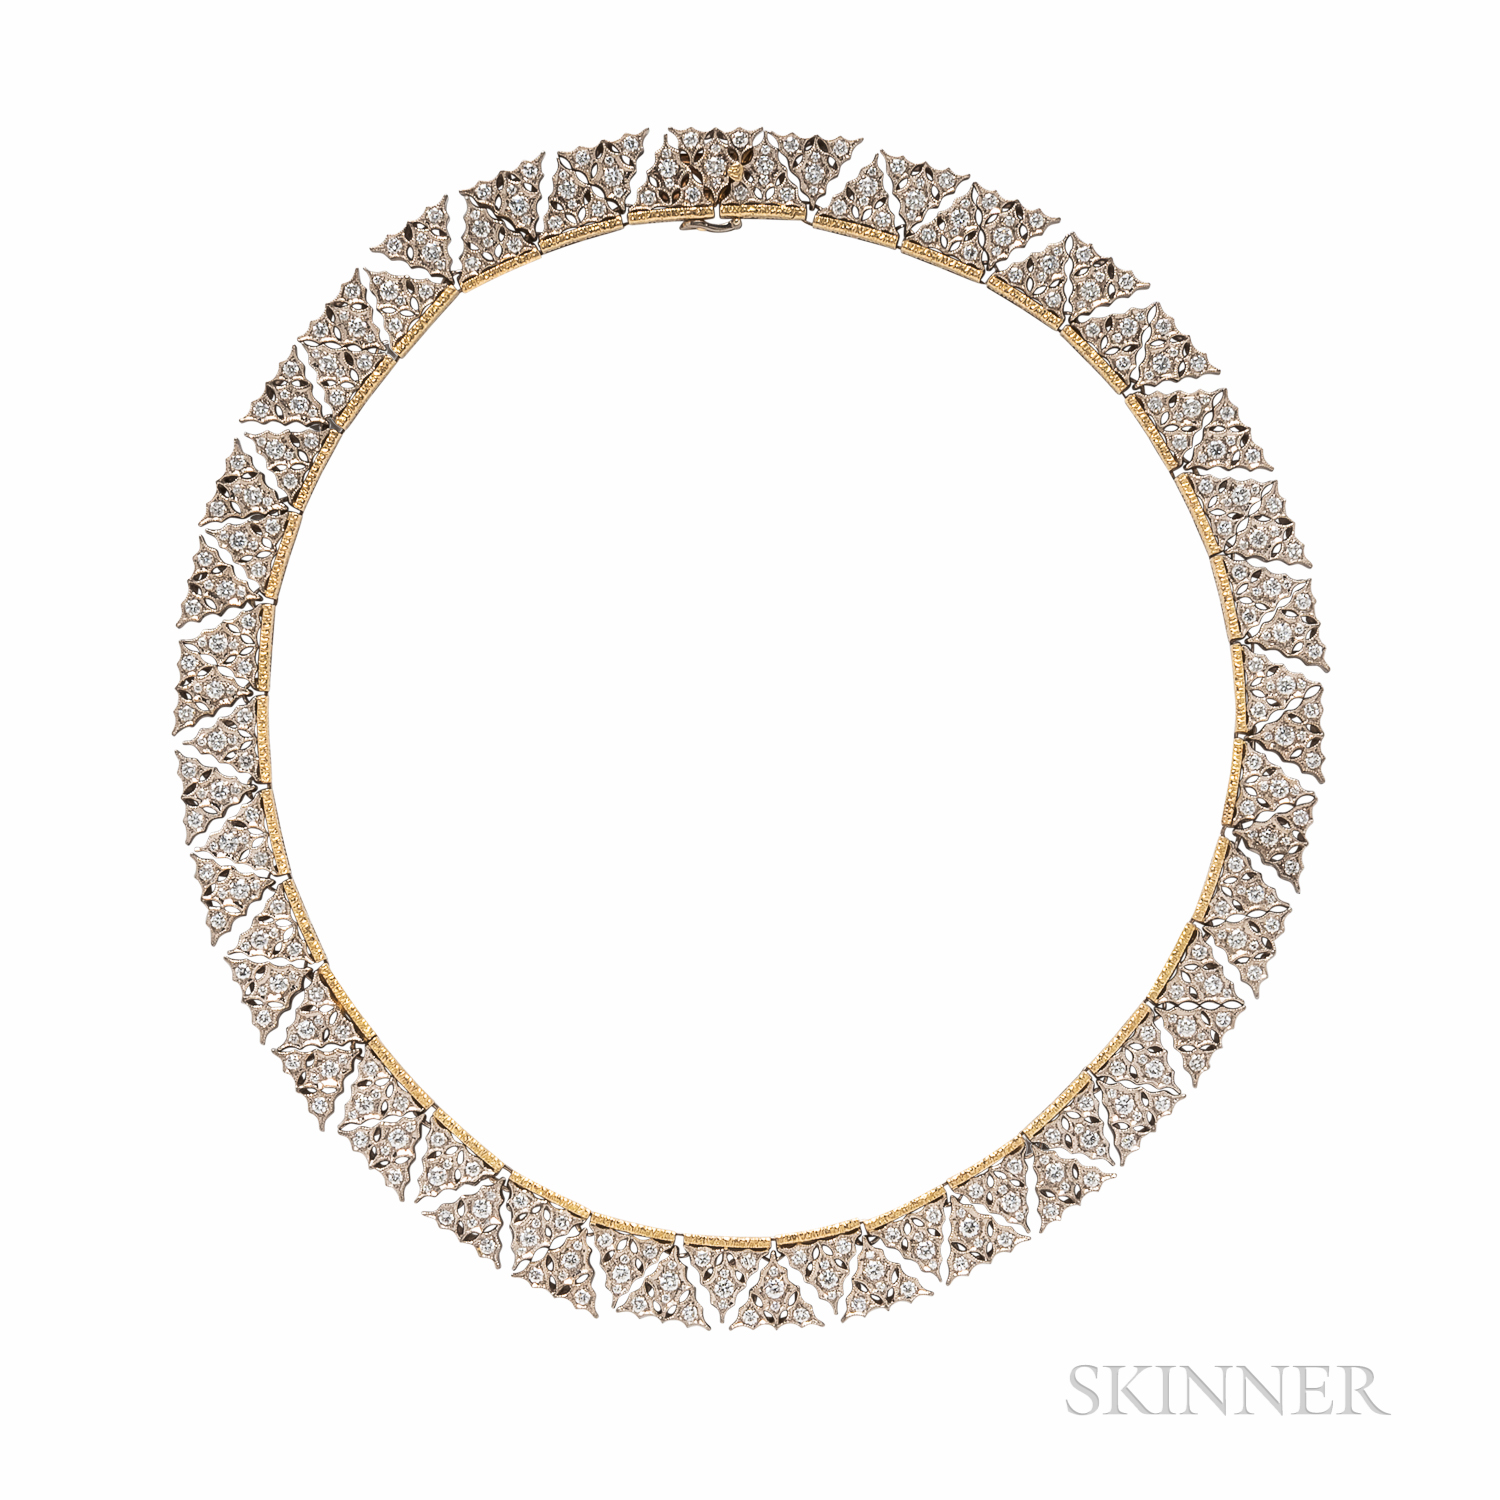 18kt Gold and Diamond Necklace